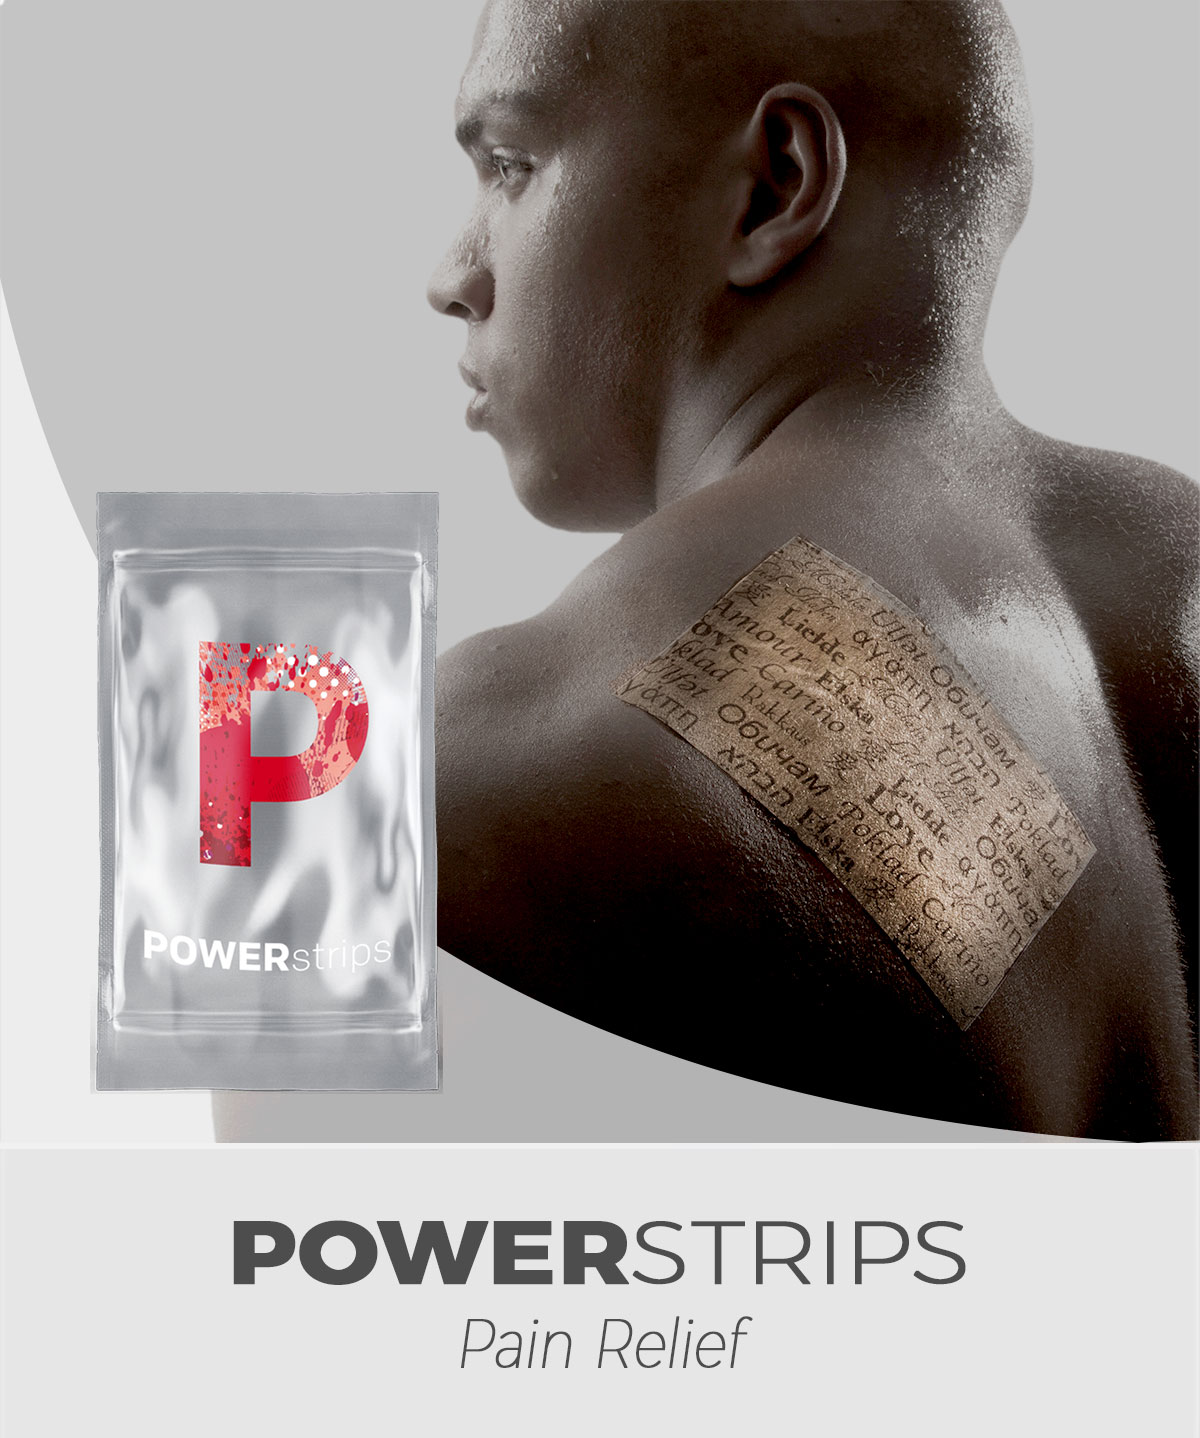 FGXpress POWERSTRIPS